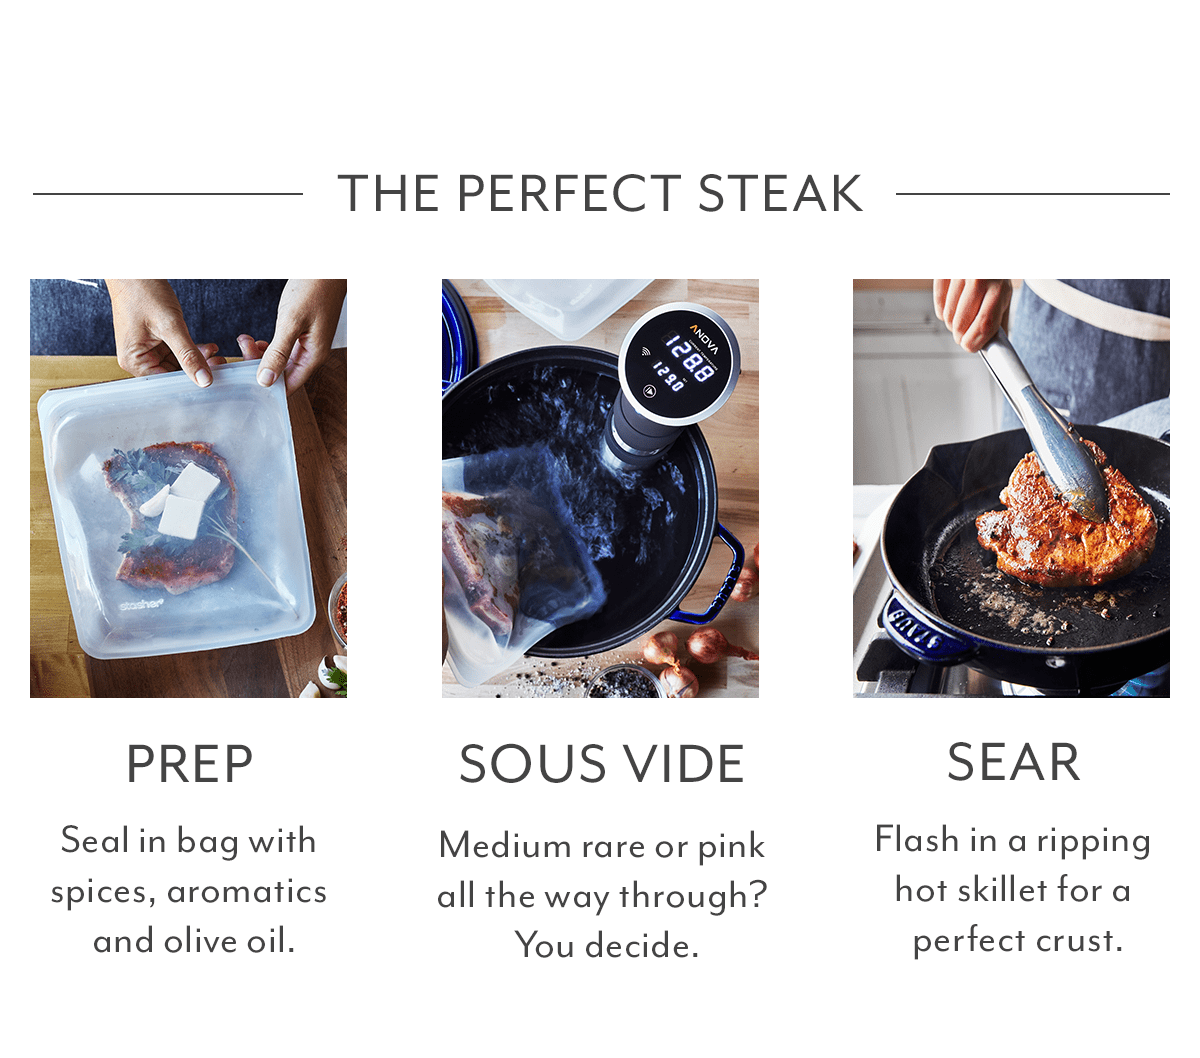 The Perfect Steak - Prep, Sous Vide, Sear